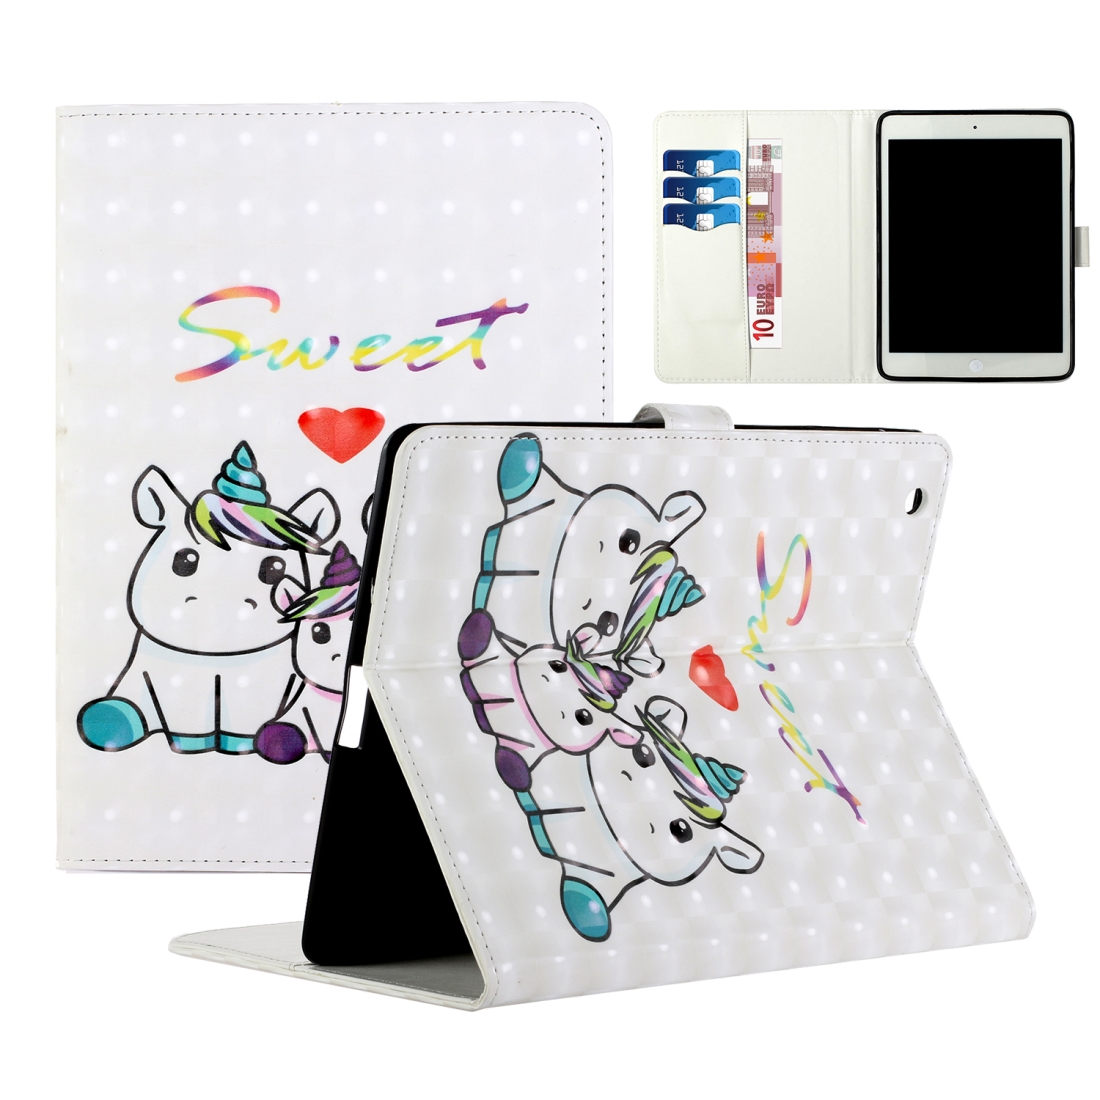 iPad 2 Case Fits iPad 2,3,4, With A Artsy Leather Design with Sleeve & Auto Sleep (Unicorns)